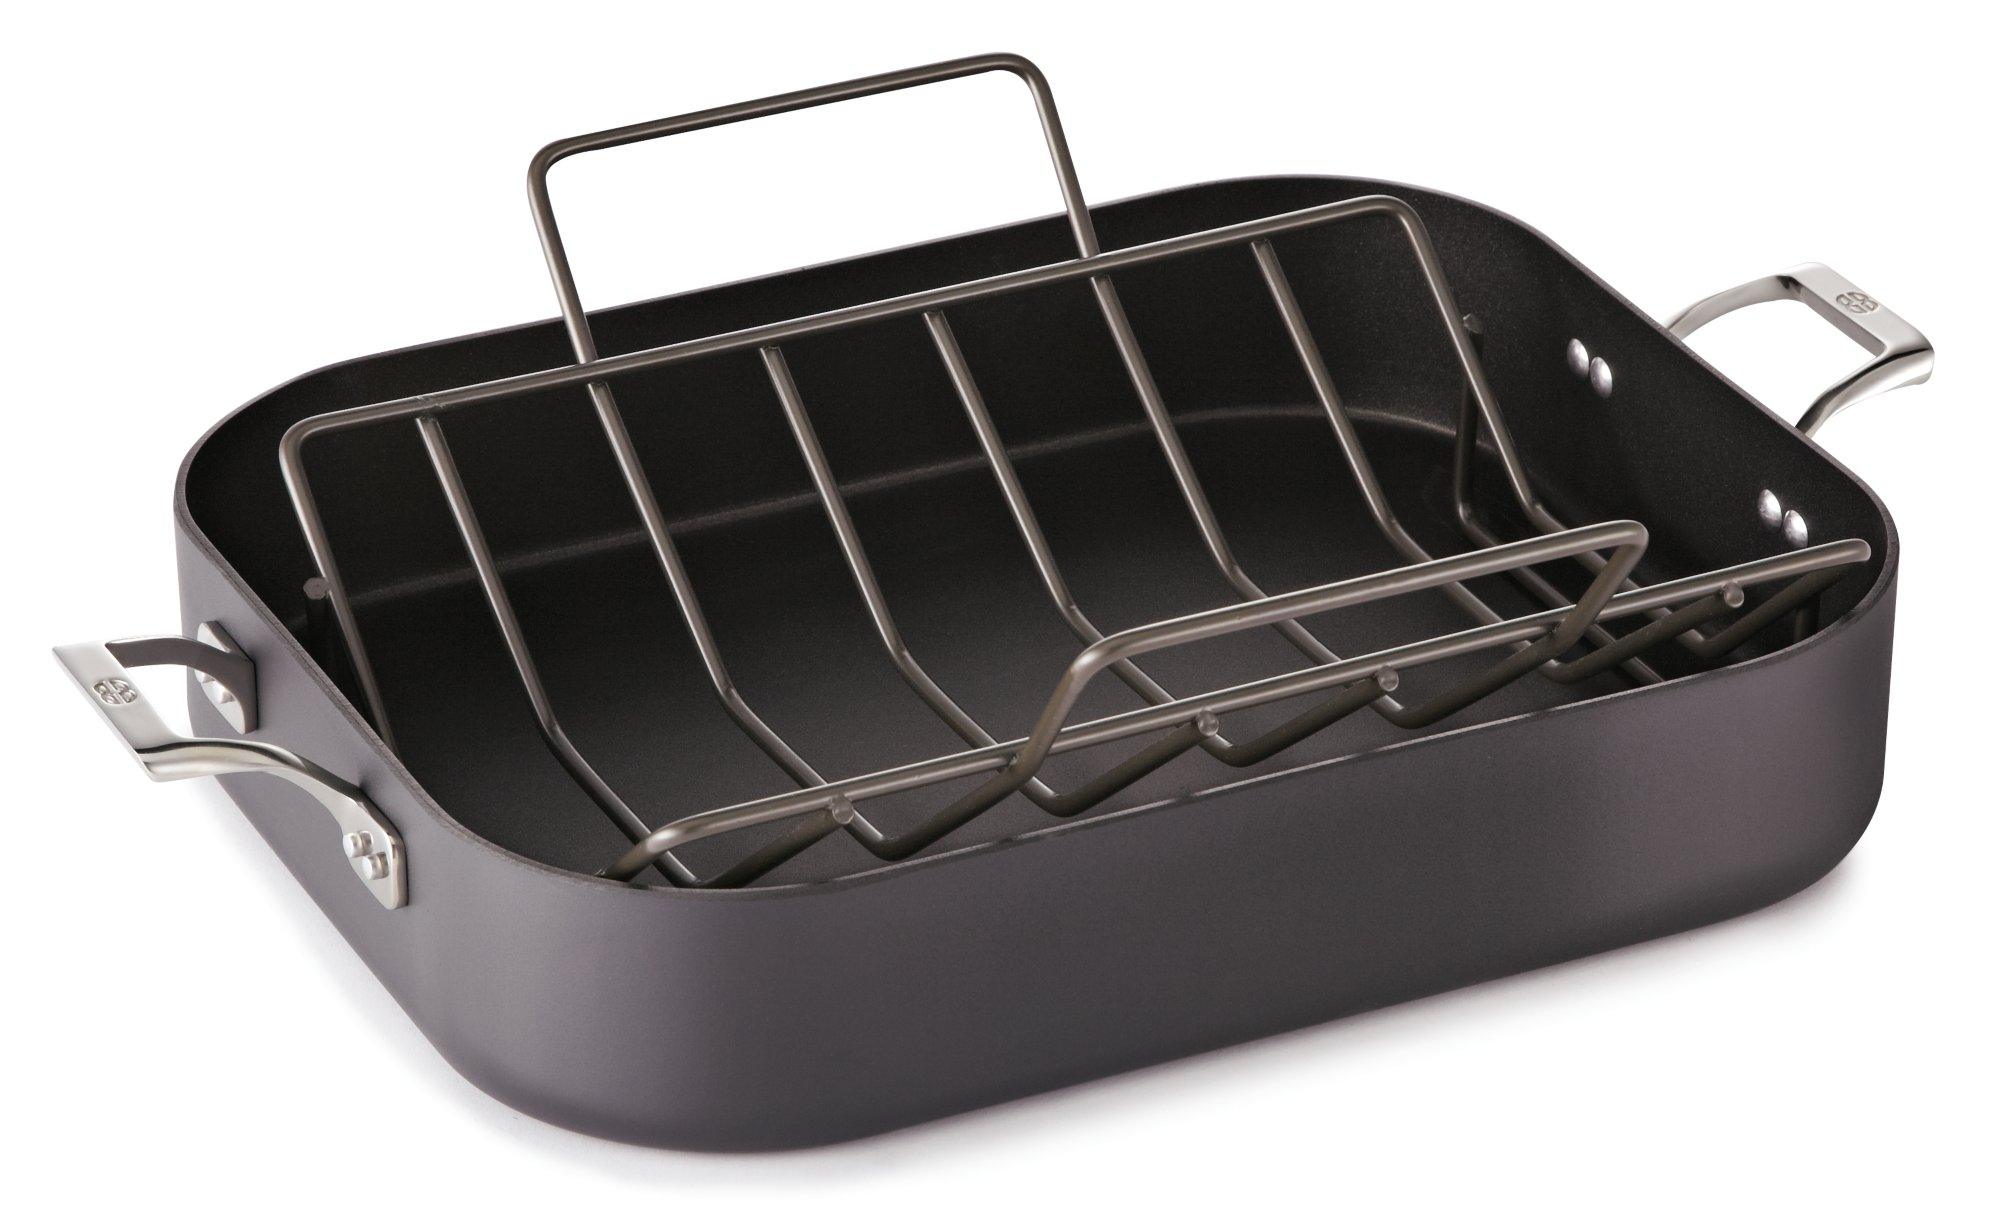 Calphalon Williams-Sonoma Elite Nonstick 16-in. Roaster & Rack